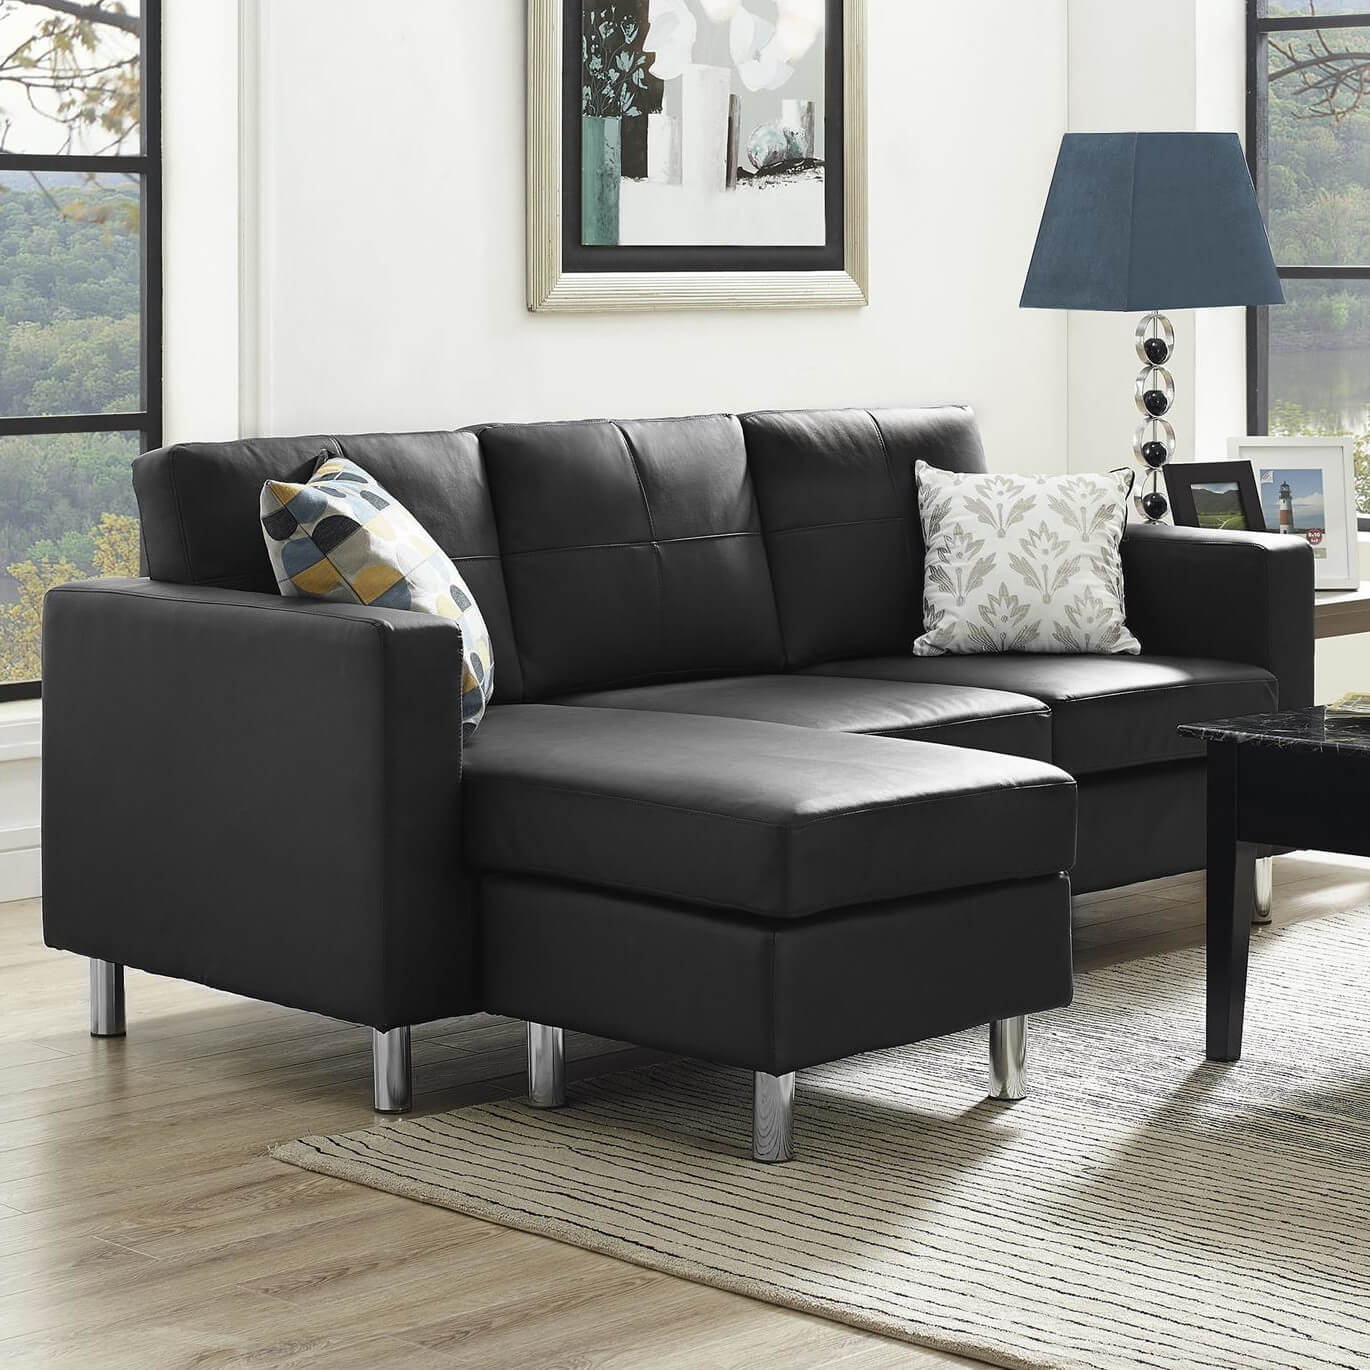 Discount Modern Sofas: 13 Cheap Sectional Sofas Under $500 For 2019